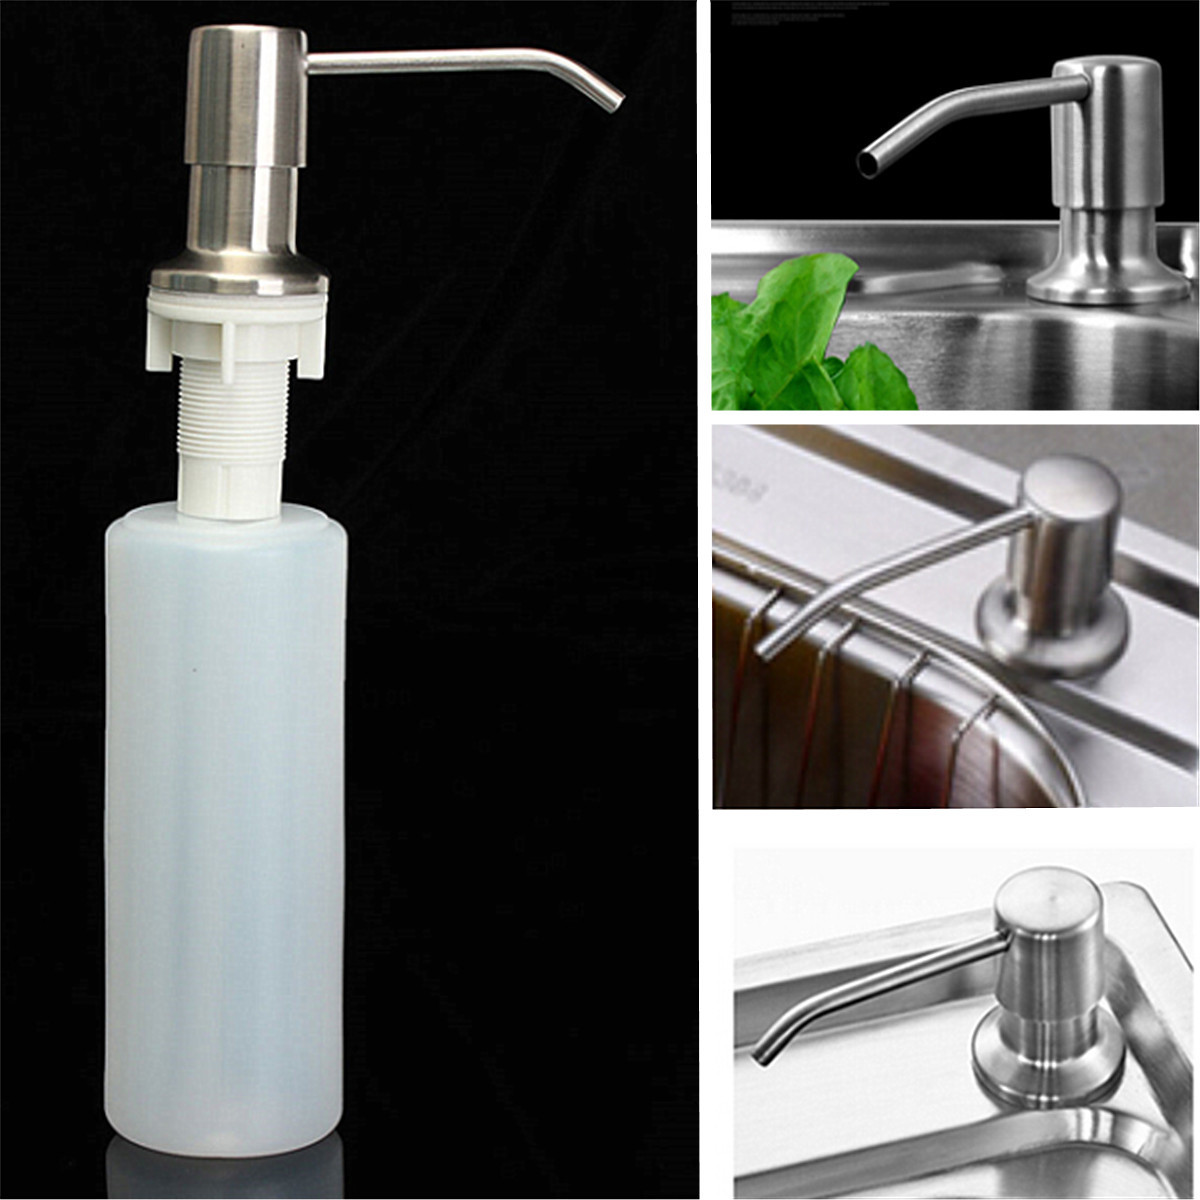 350ML Kitchen Sink Clear Liquid Lotion Hand Soap Dispenser 304 Stainless Steel Pump Head ABS Bottle Refillable Bathroom Accessories